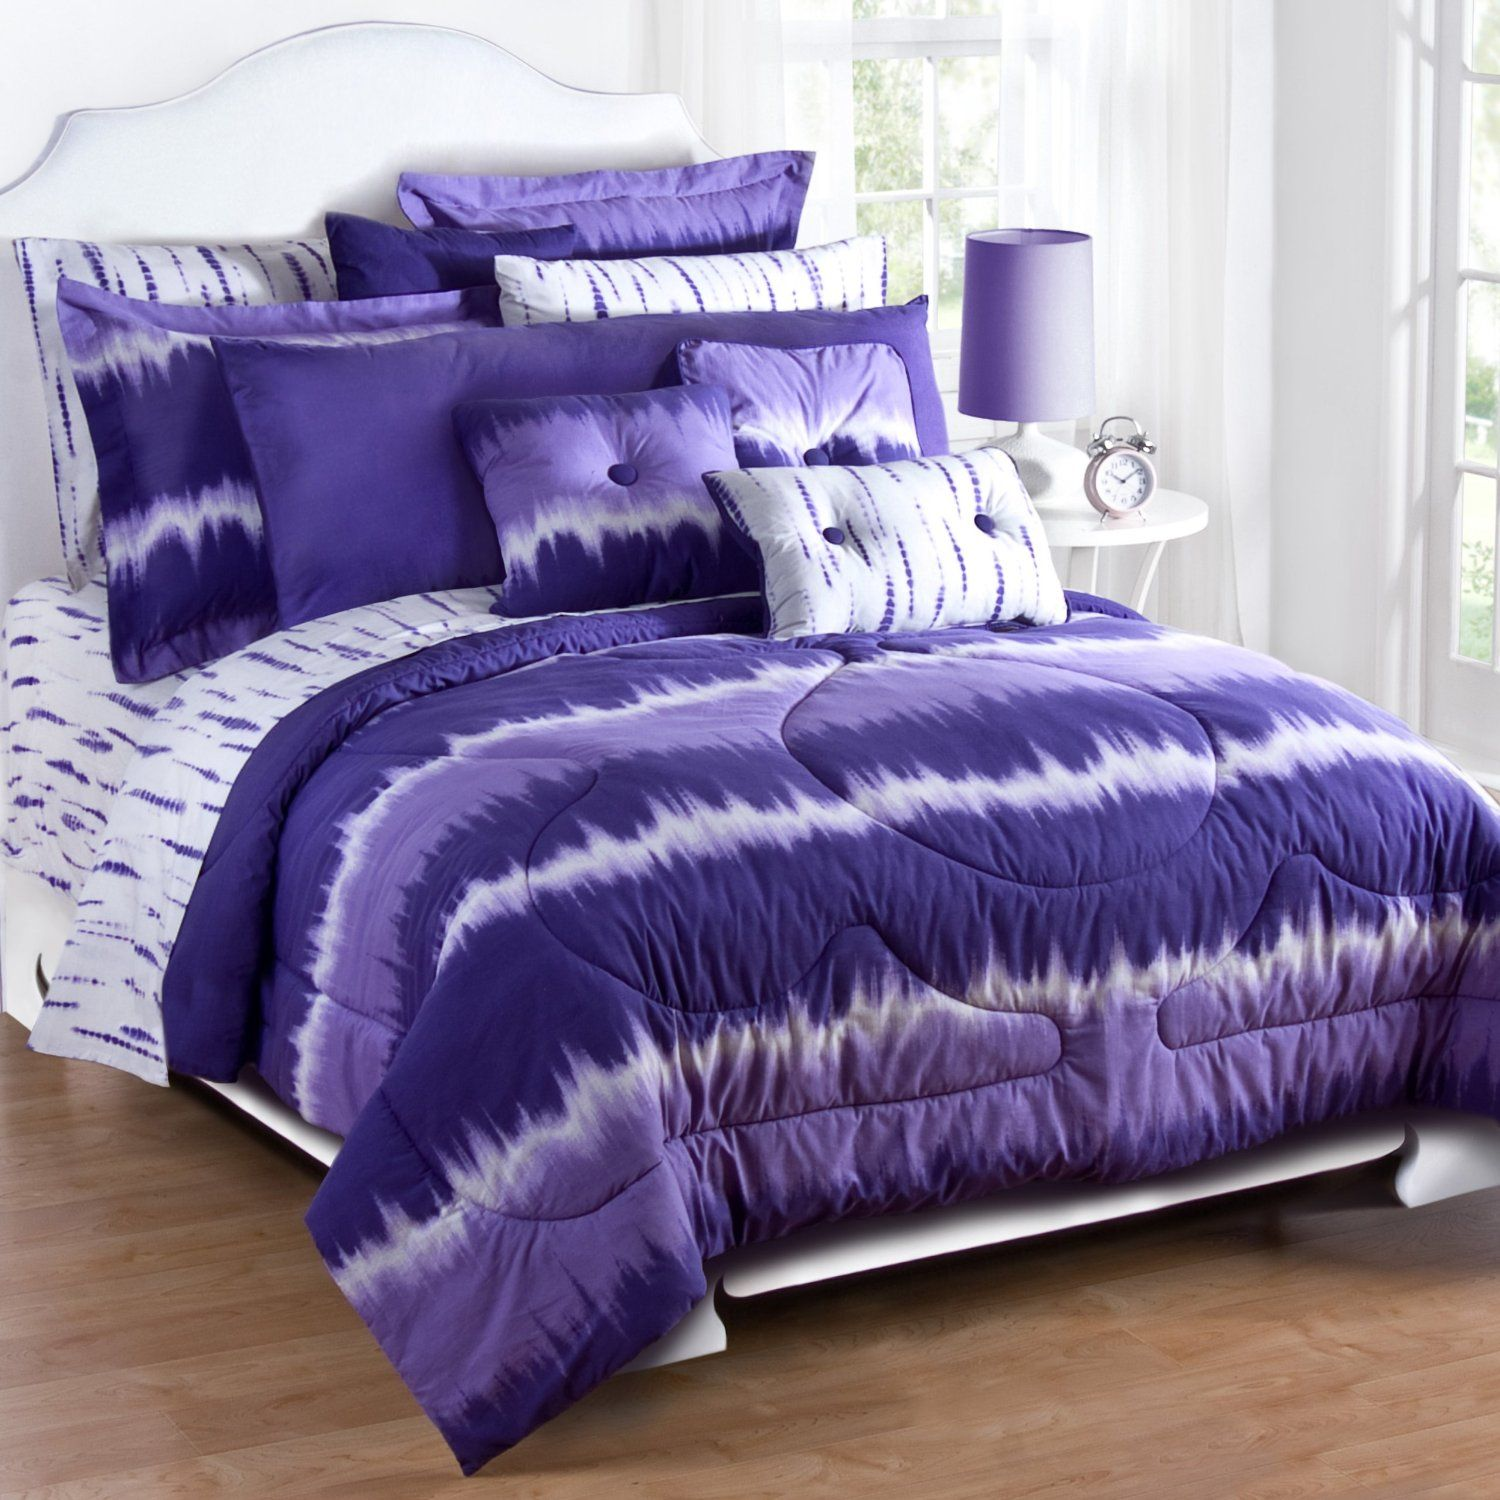 Purple Tie Dye Comforter Set Omg I Want This Purple Pinterest Comforter Sets Purple